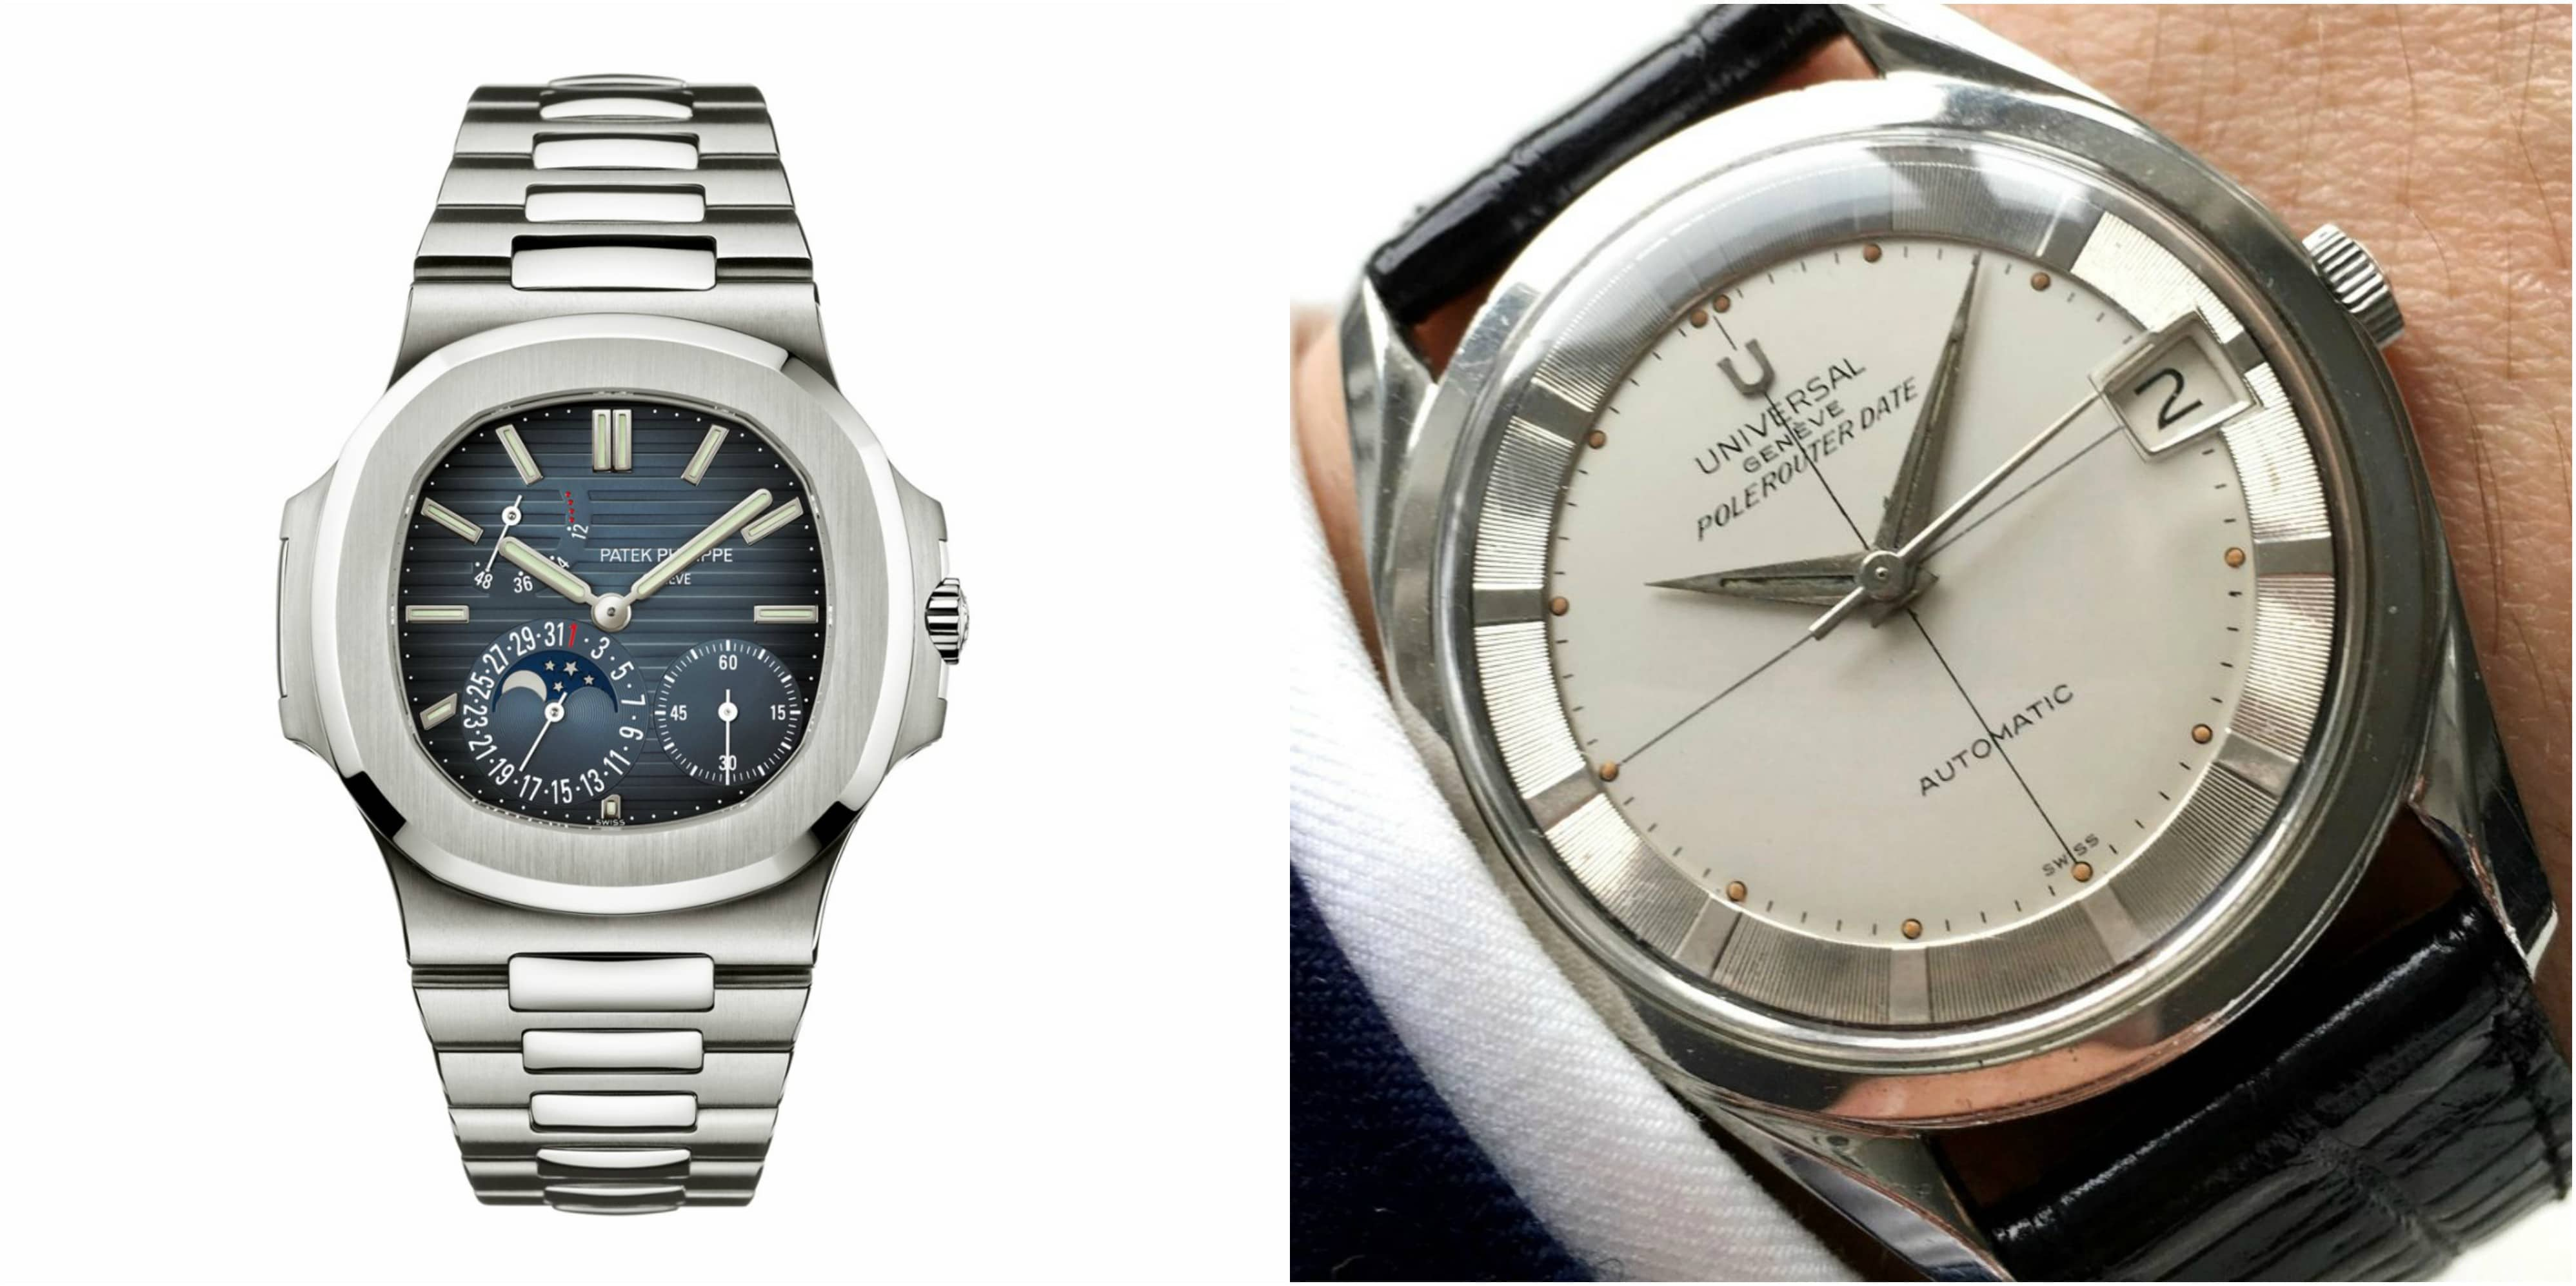 Universal Genève Polerouter: Forefather of the Patek Philippe Nautilus?